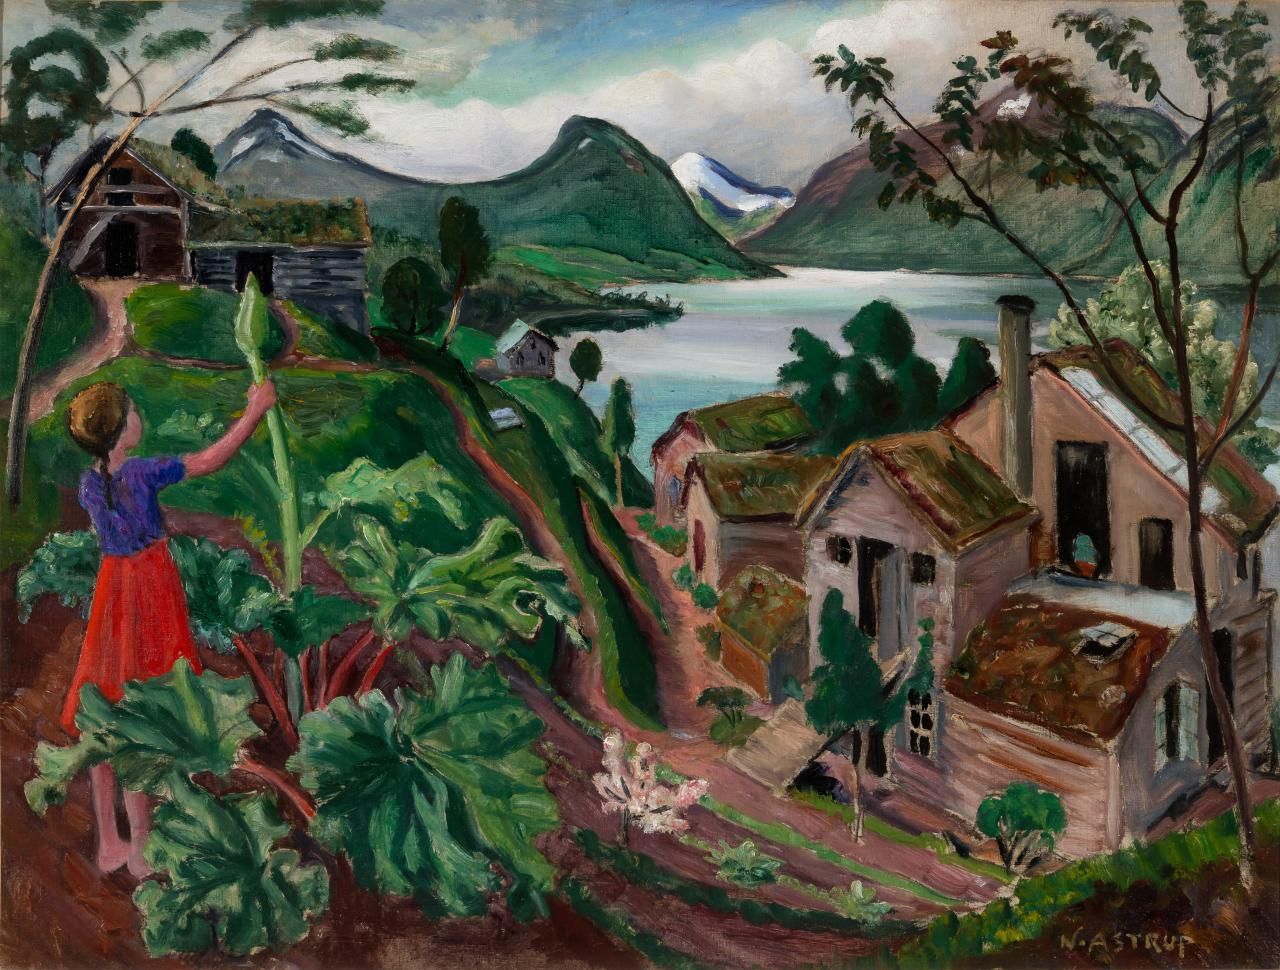 Nikolai Astrup, Rhubarb and Little Girl at Sandalstrand, C 1927